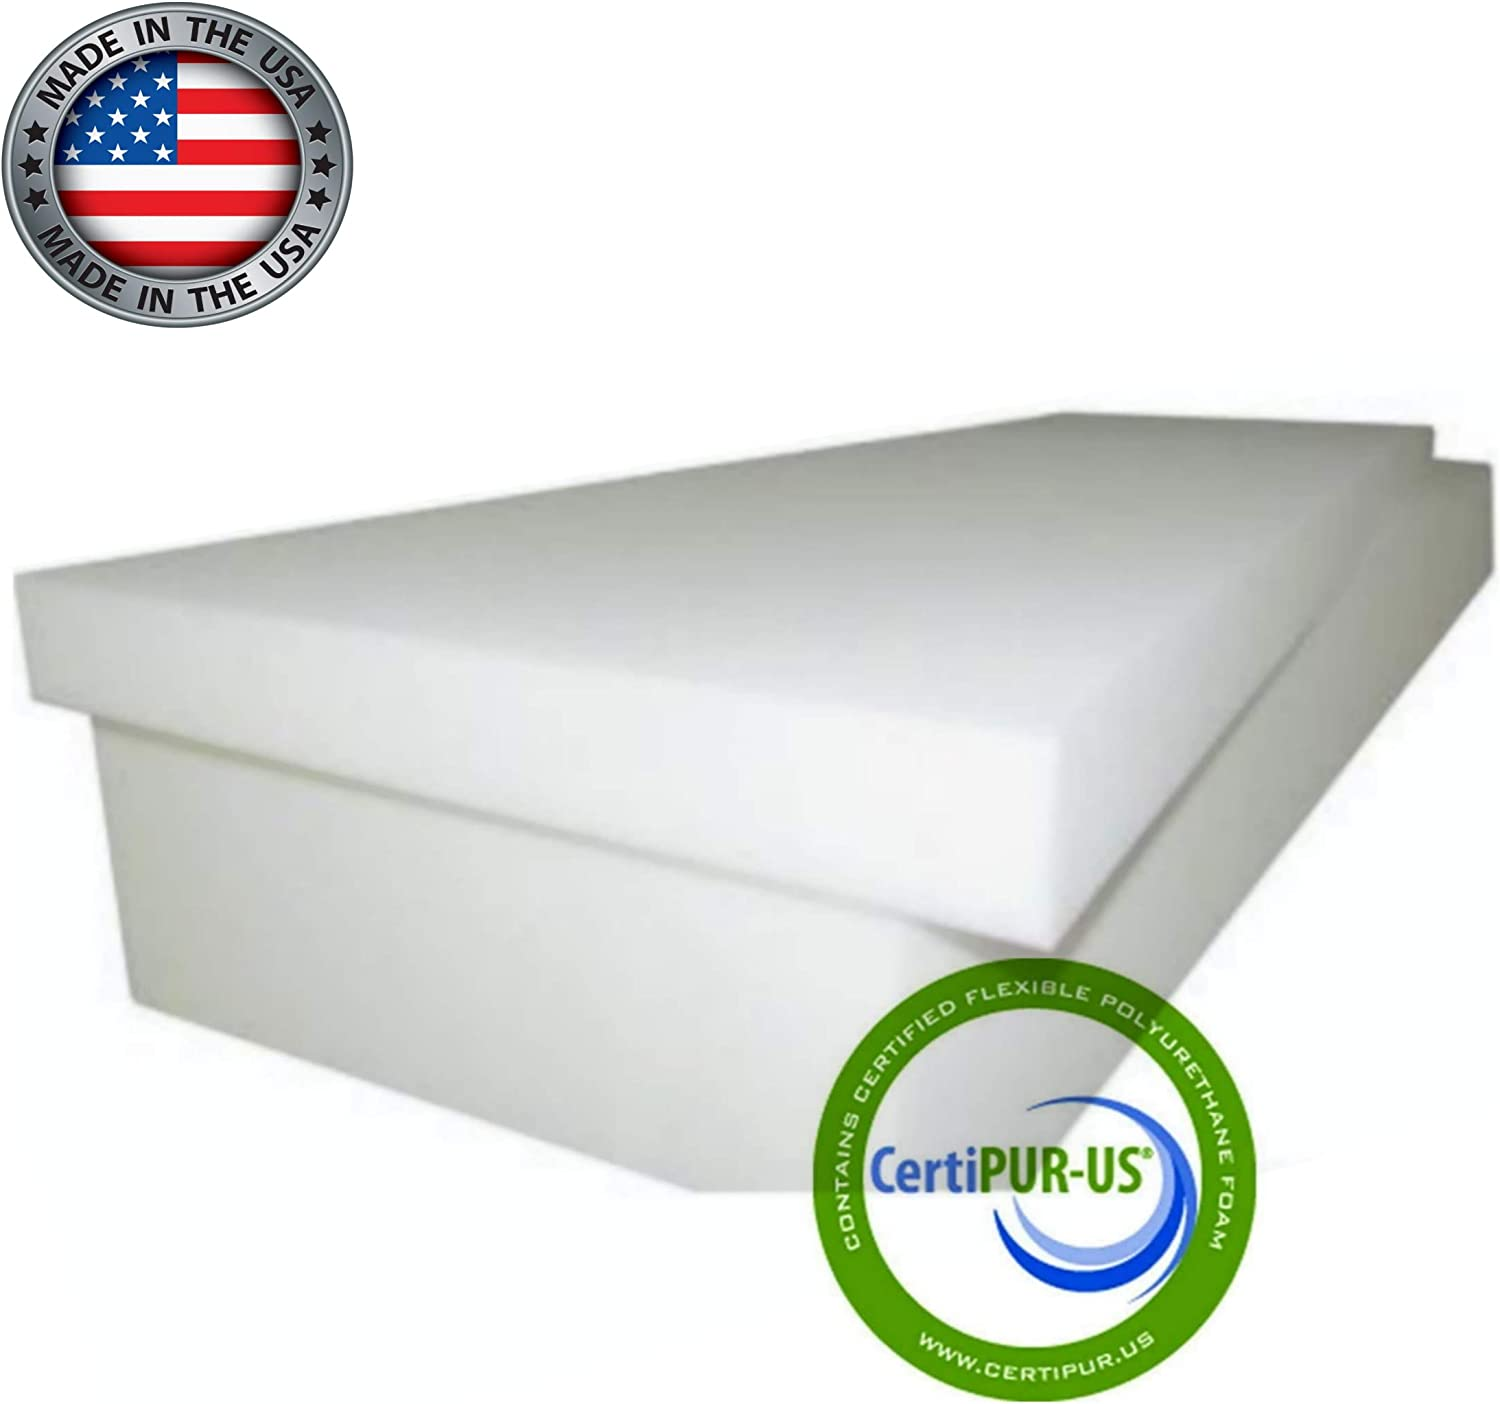 Upholstery Cushion Made in USA GoTo Foam 1 Height x 24 Width x 72 Length 44ILD Firm